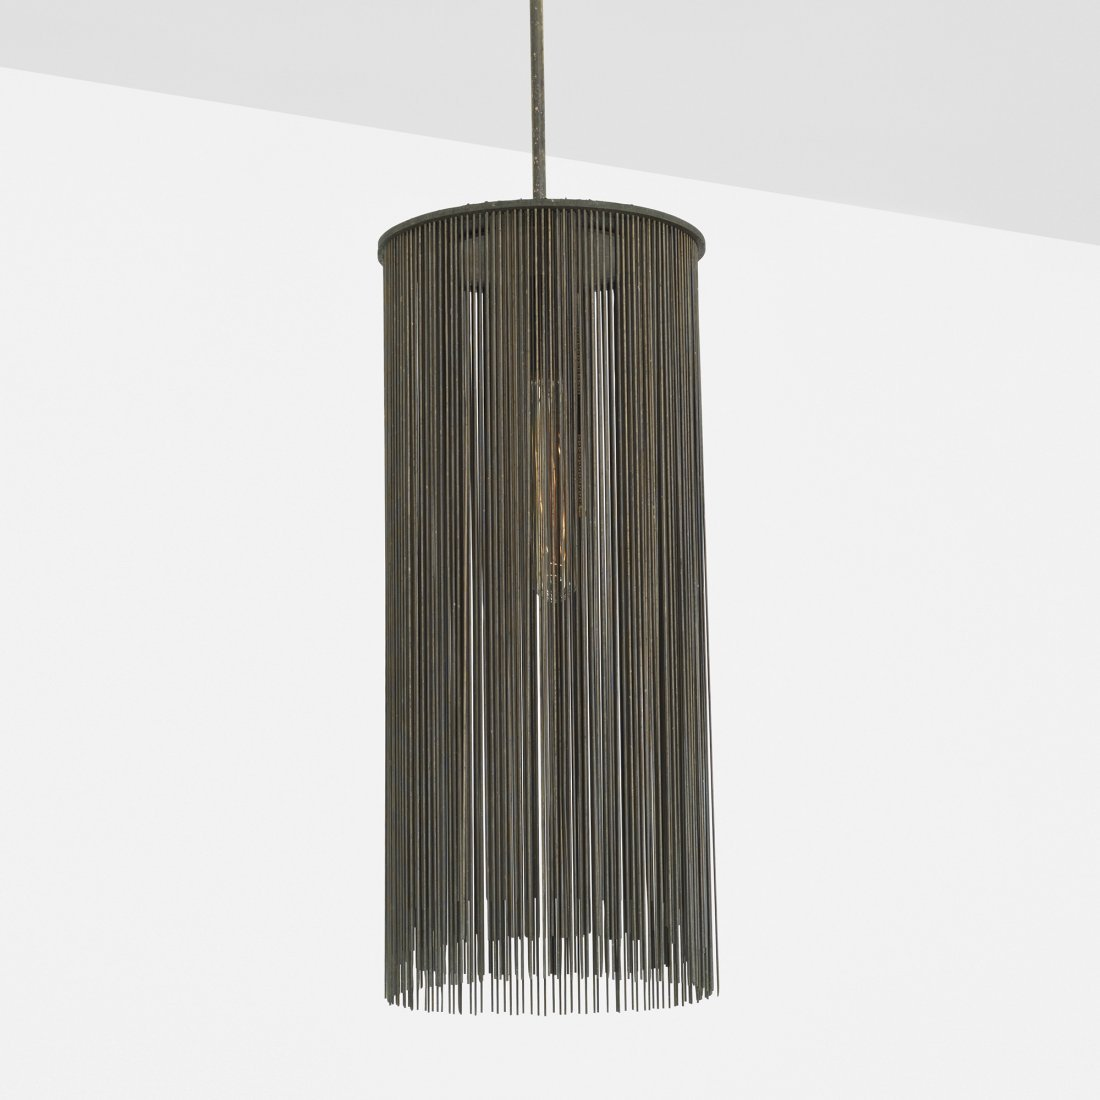 Harry Bertoia untitled (Suspended Lamp Form)